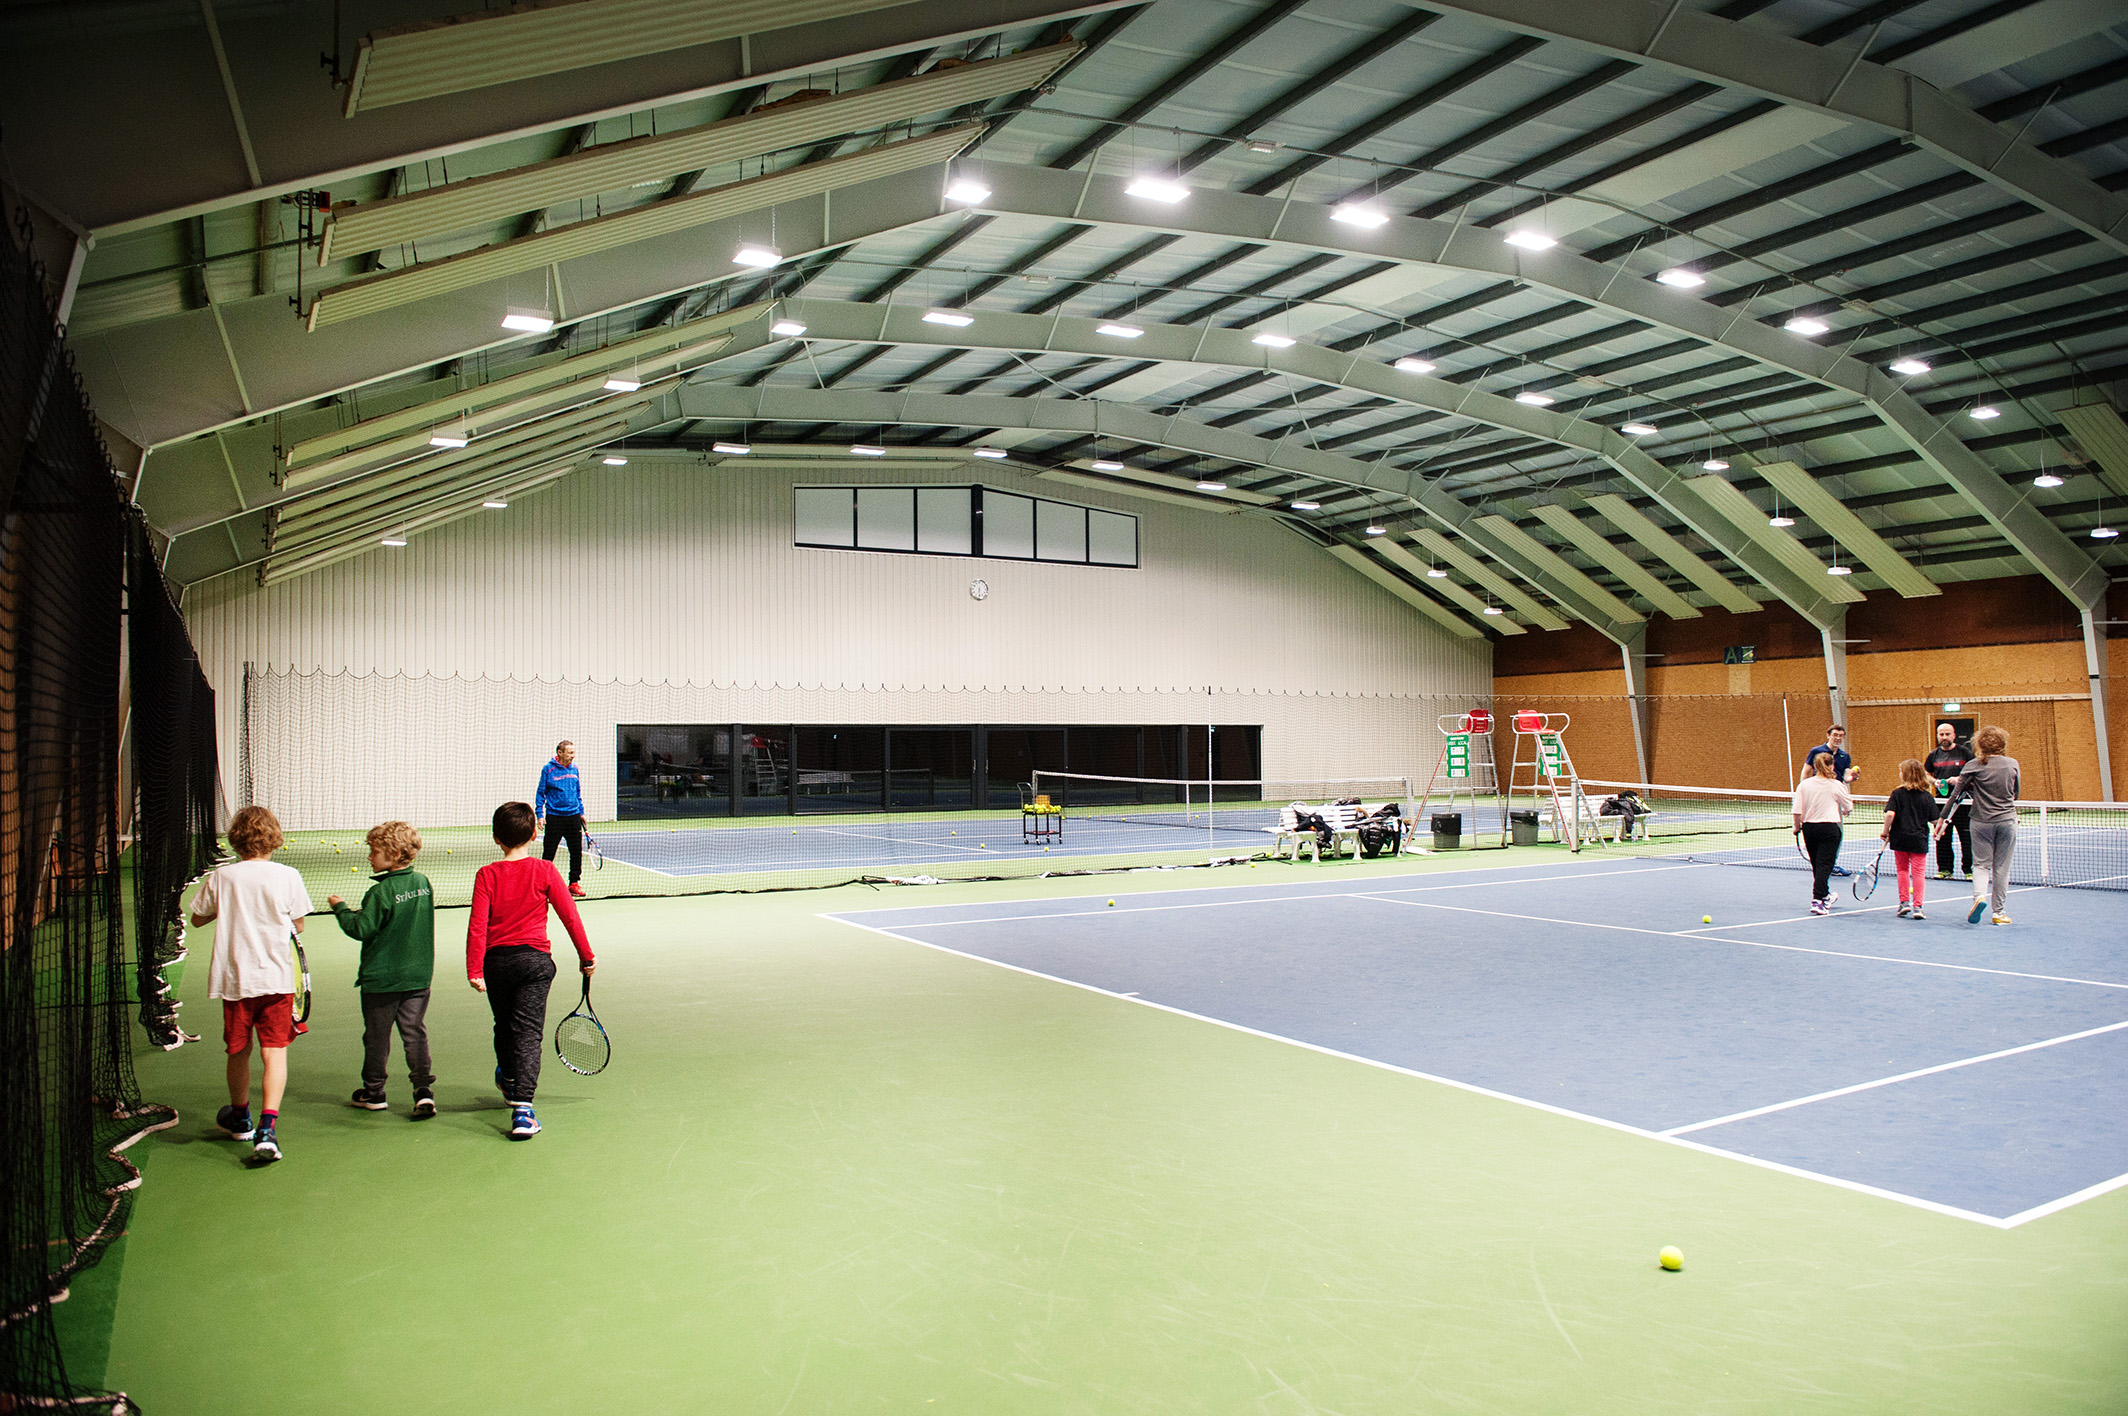 The Bonnevoie Tennis Club gets a makeover | CityMag